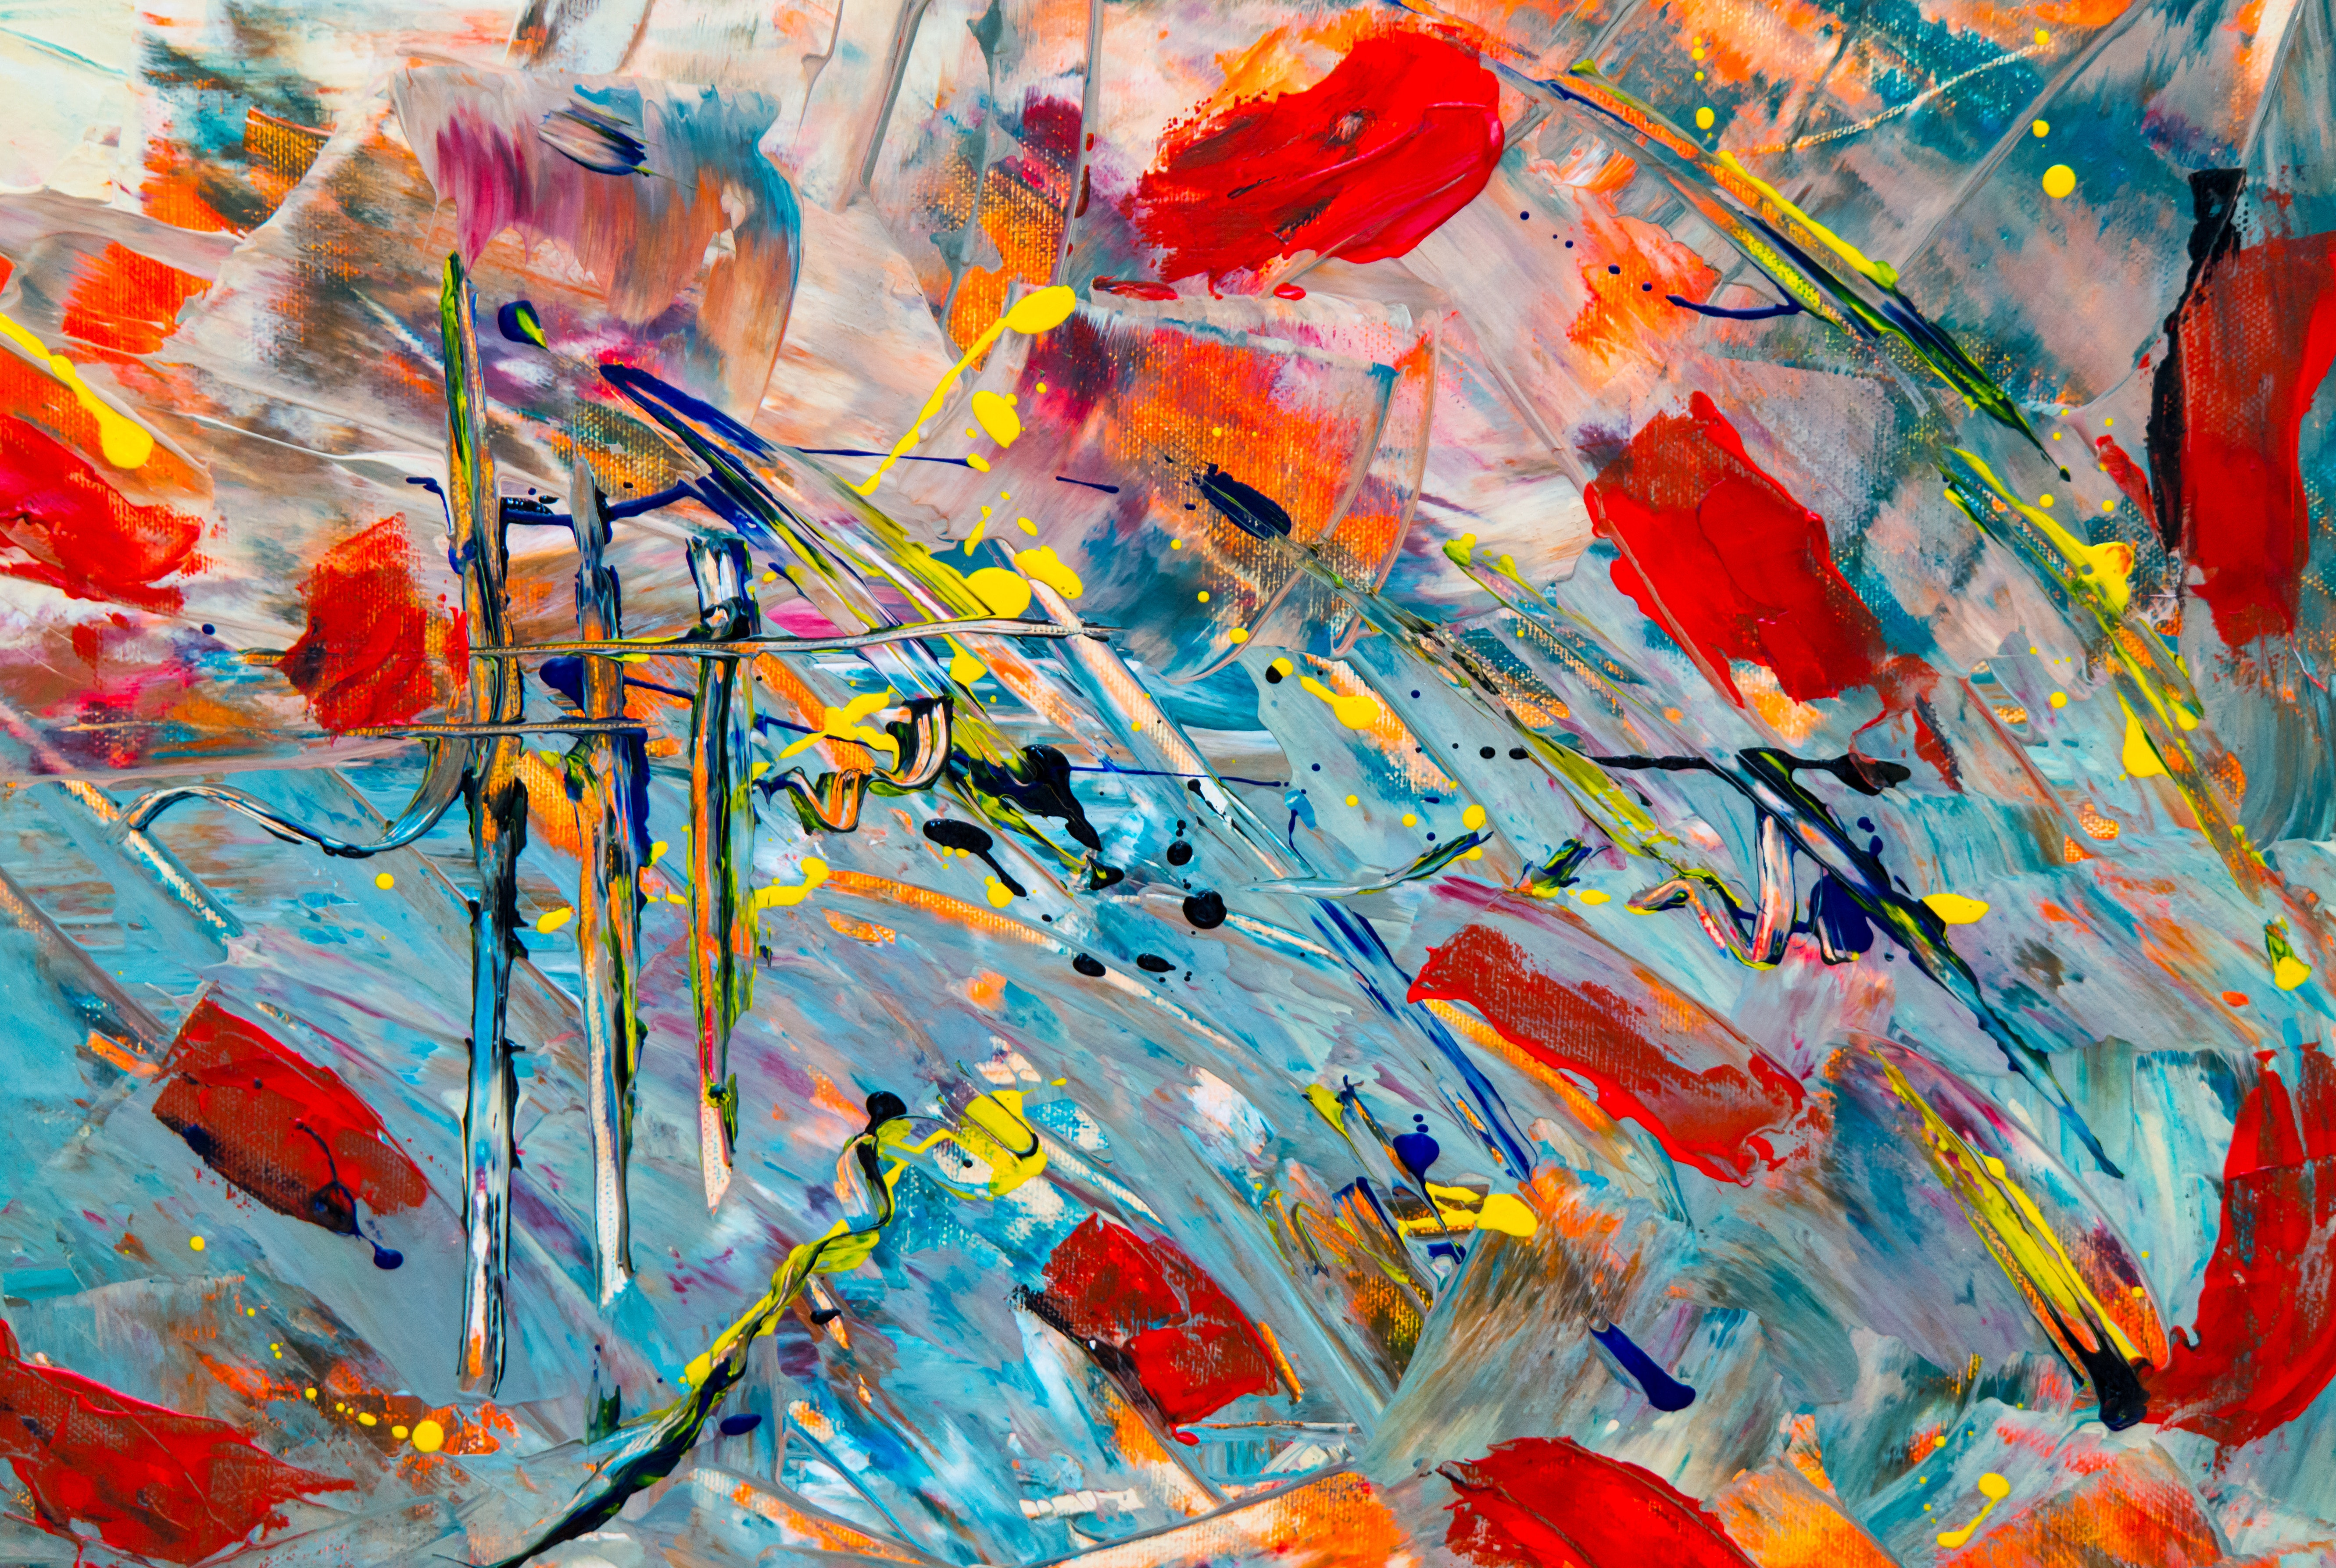 1000 Amazing Abstract Painting Photos Pexels Free Stock Photos